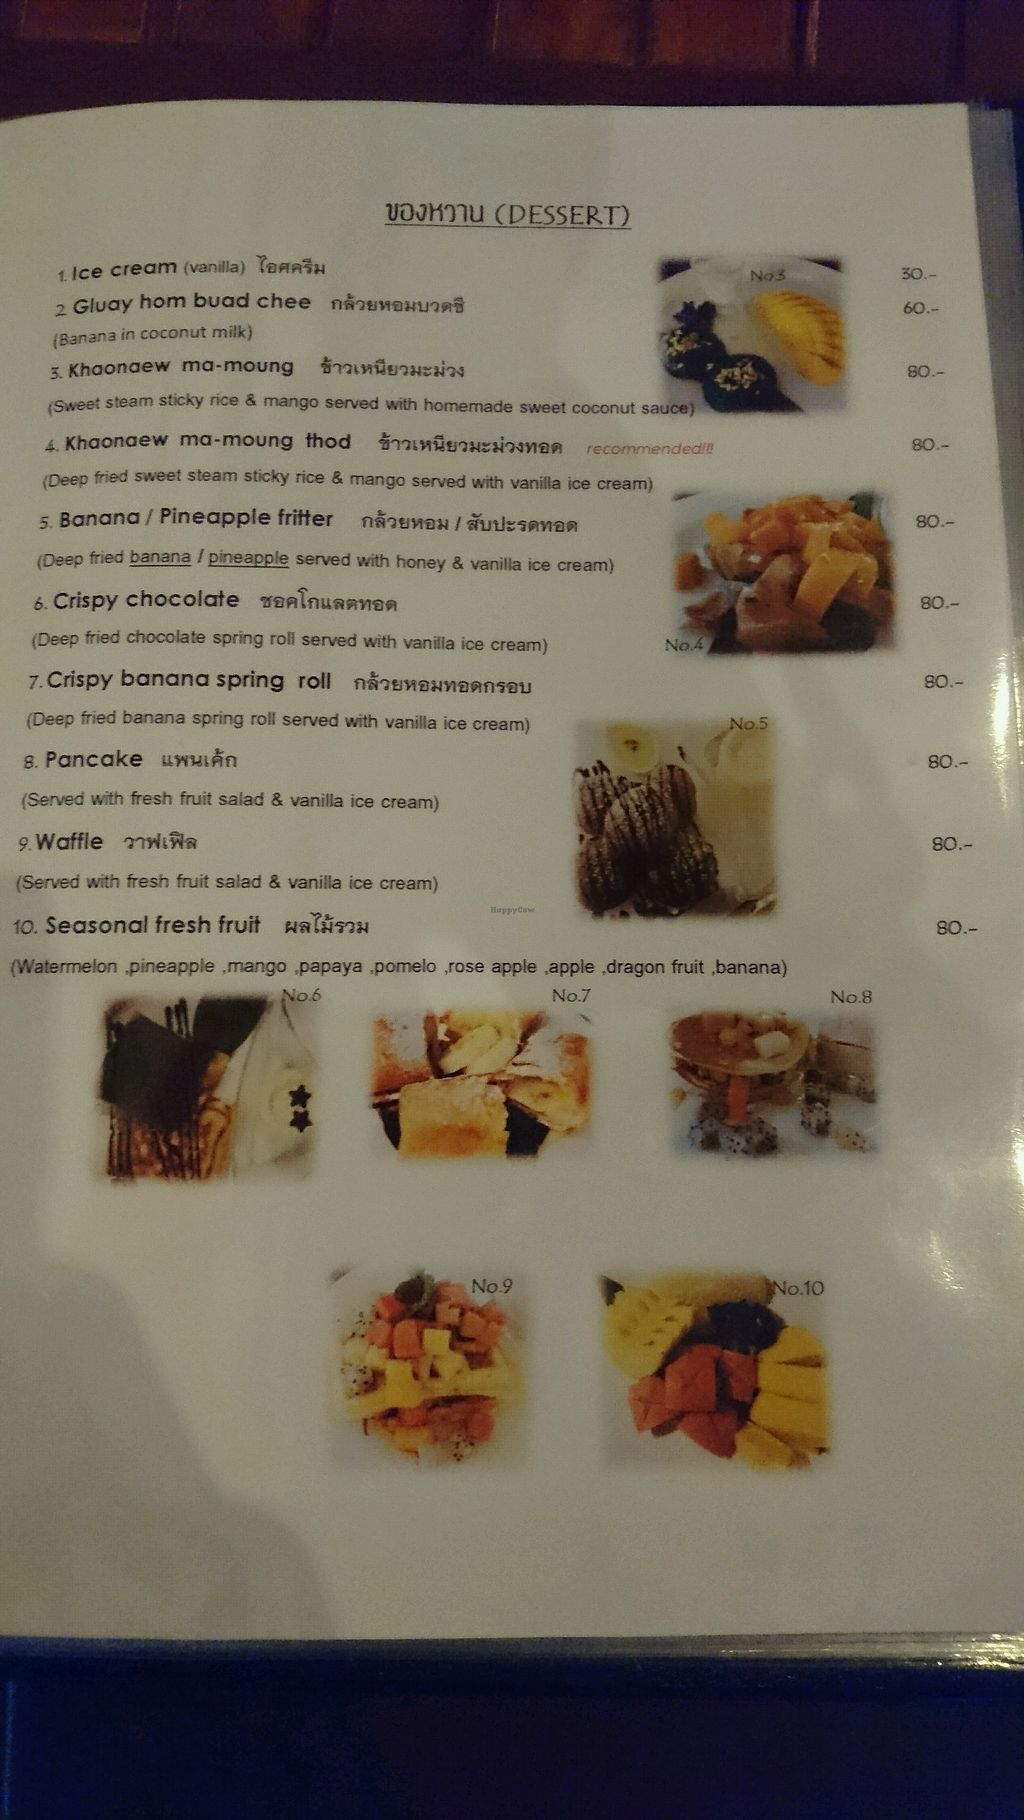 """Photo of Pinto Restaurant  by <a href=""""/members/profile/AnthonyMTL"""">AnthonyMTL</a> <br/>Pinto Vegetarian Menu Dessert Page <br/> December 17, 2017  - <a href='/contact/abuse/image/107357/336408'>Report</a>"""